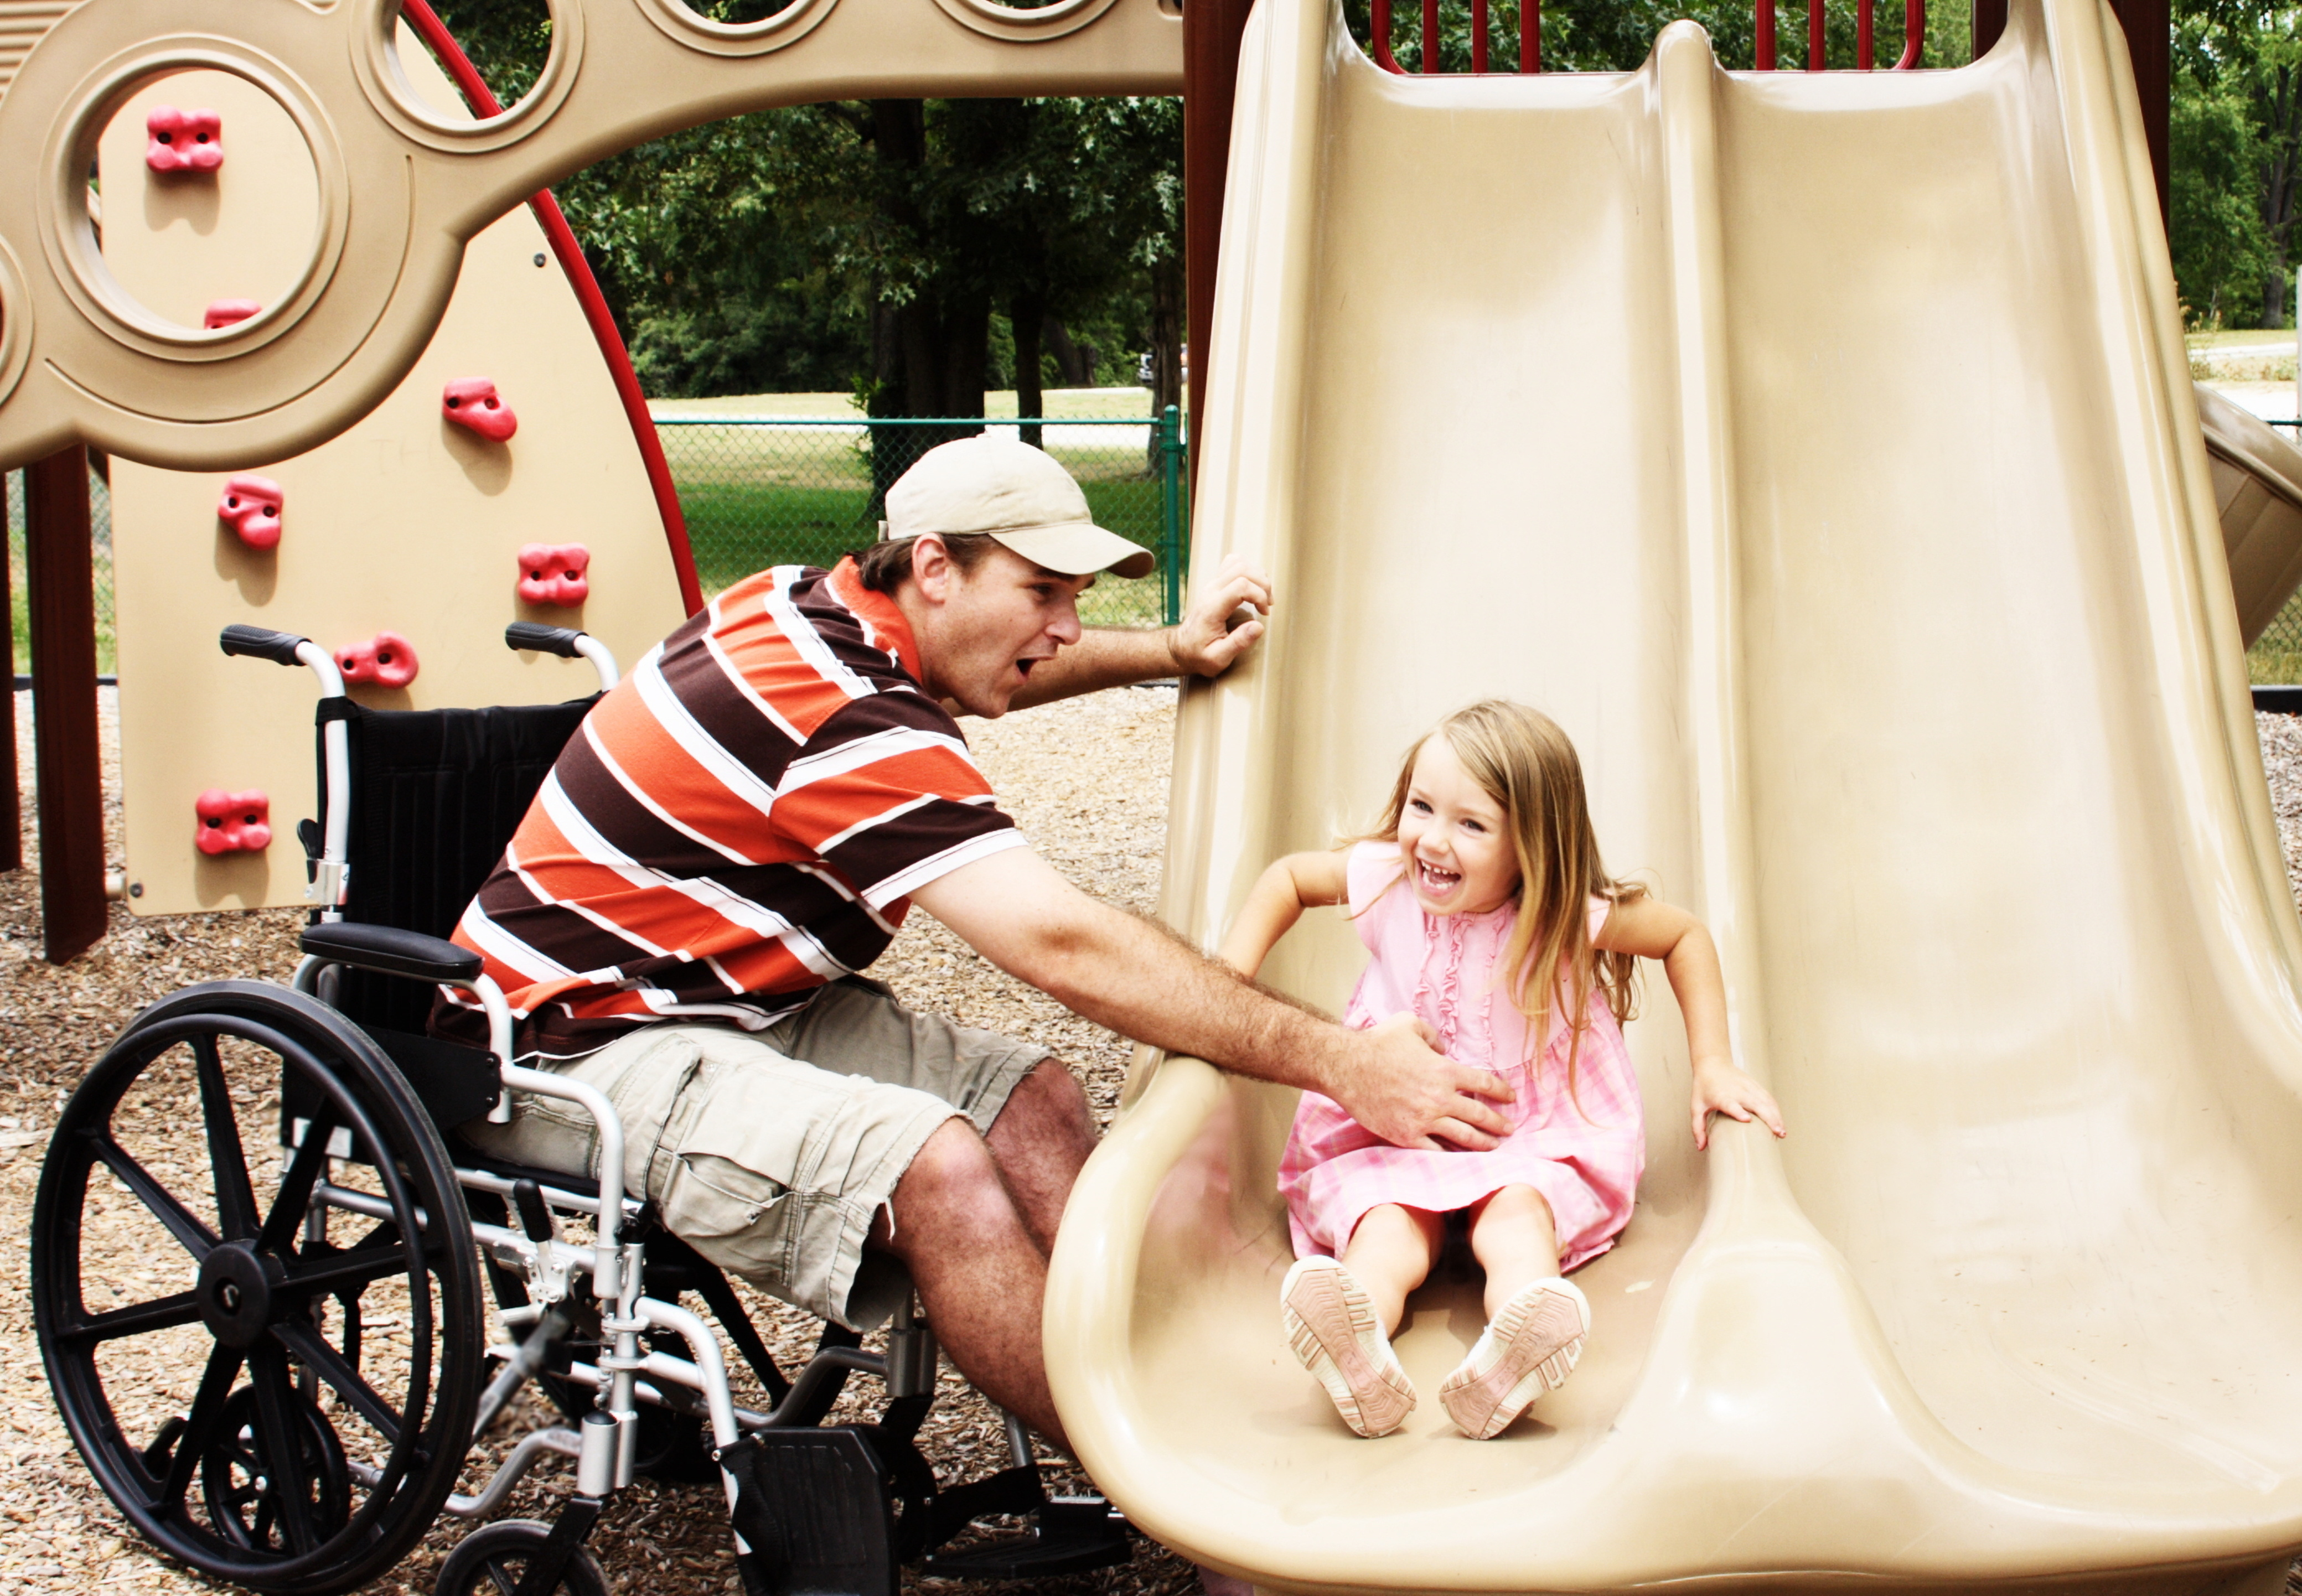 5 Things Folks with Disabilities Wish You Knew